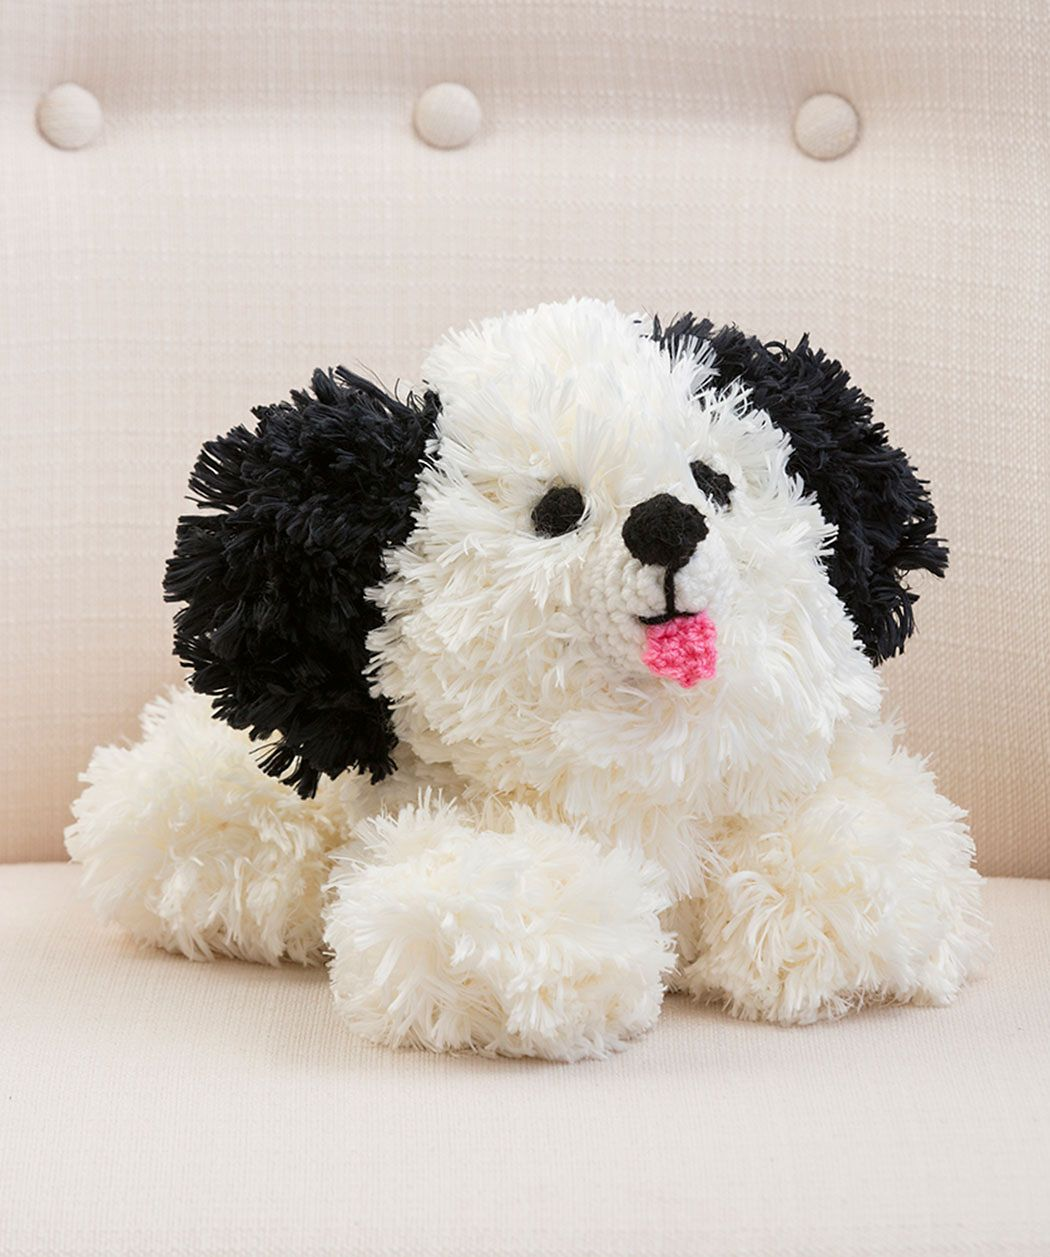 Irresistible Crochet Puppy By Michele Wilcox - Free Crochet Pattern ...